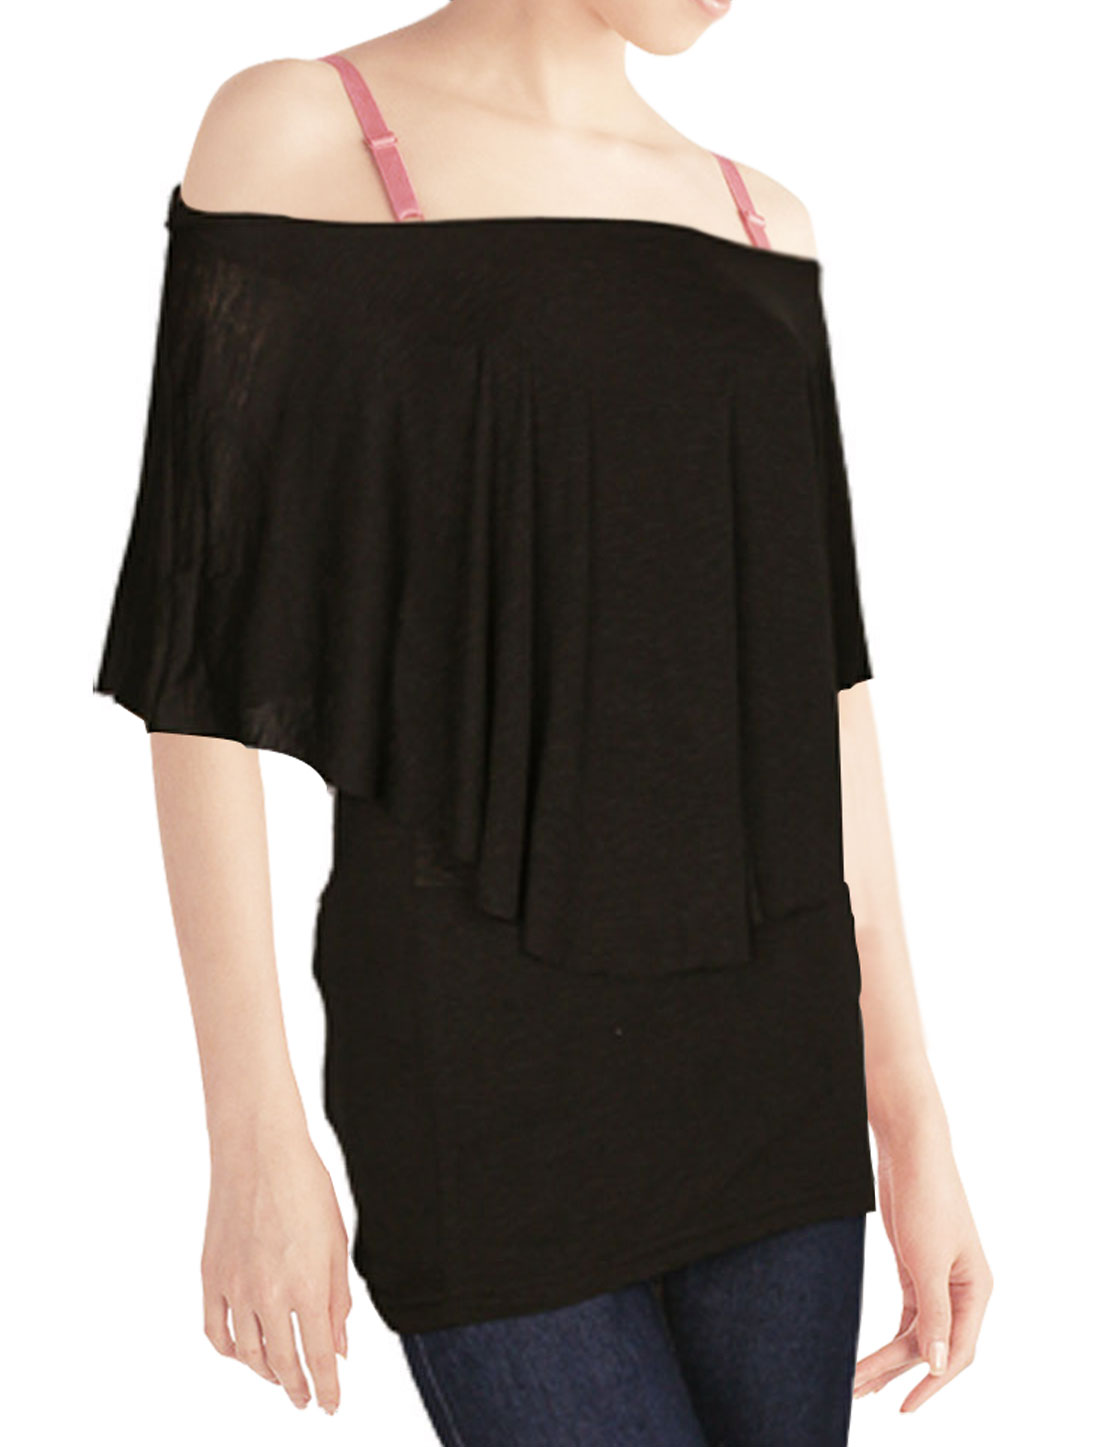 Ladies Elastic Sleeveless Ruffle Off Shoulder Shirt Black S